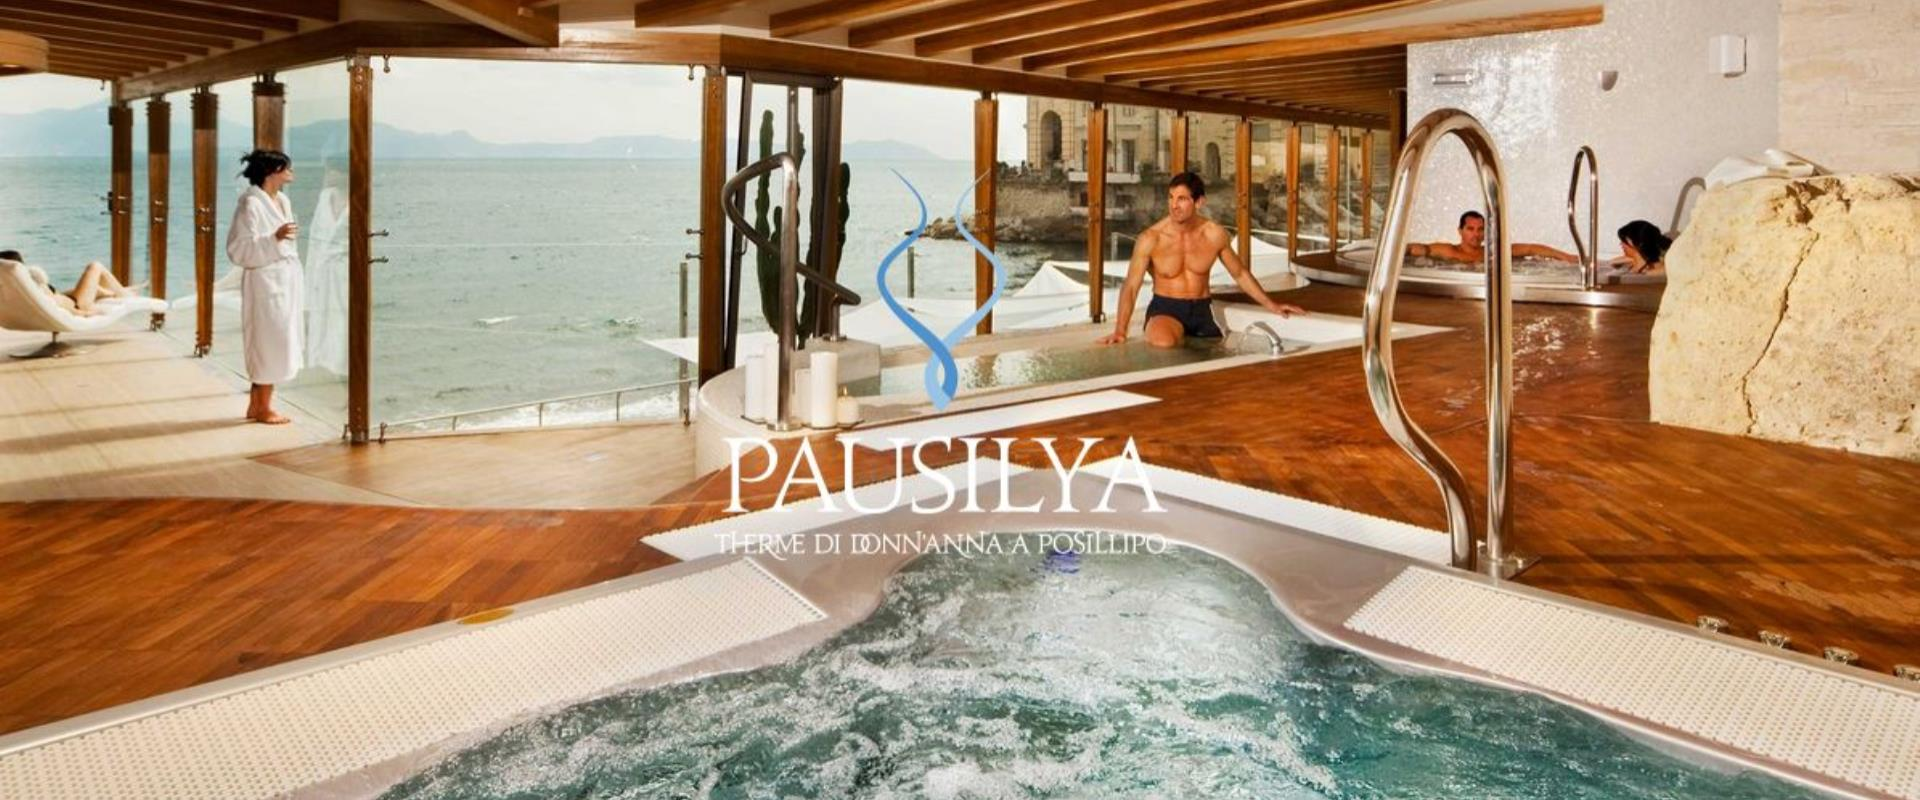 Discover the SPA Pausilya an arrangement withBW Signature Collection Hotel Paradiso: any treatment for the well-being of your body!